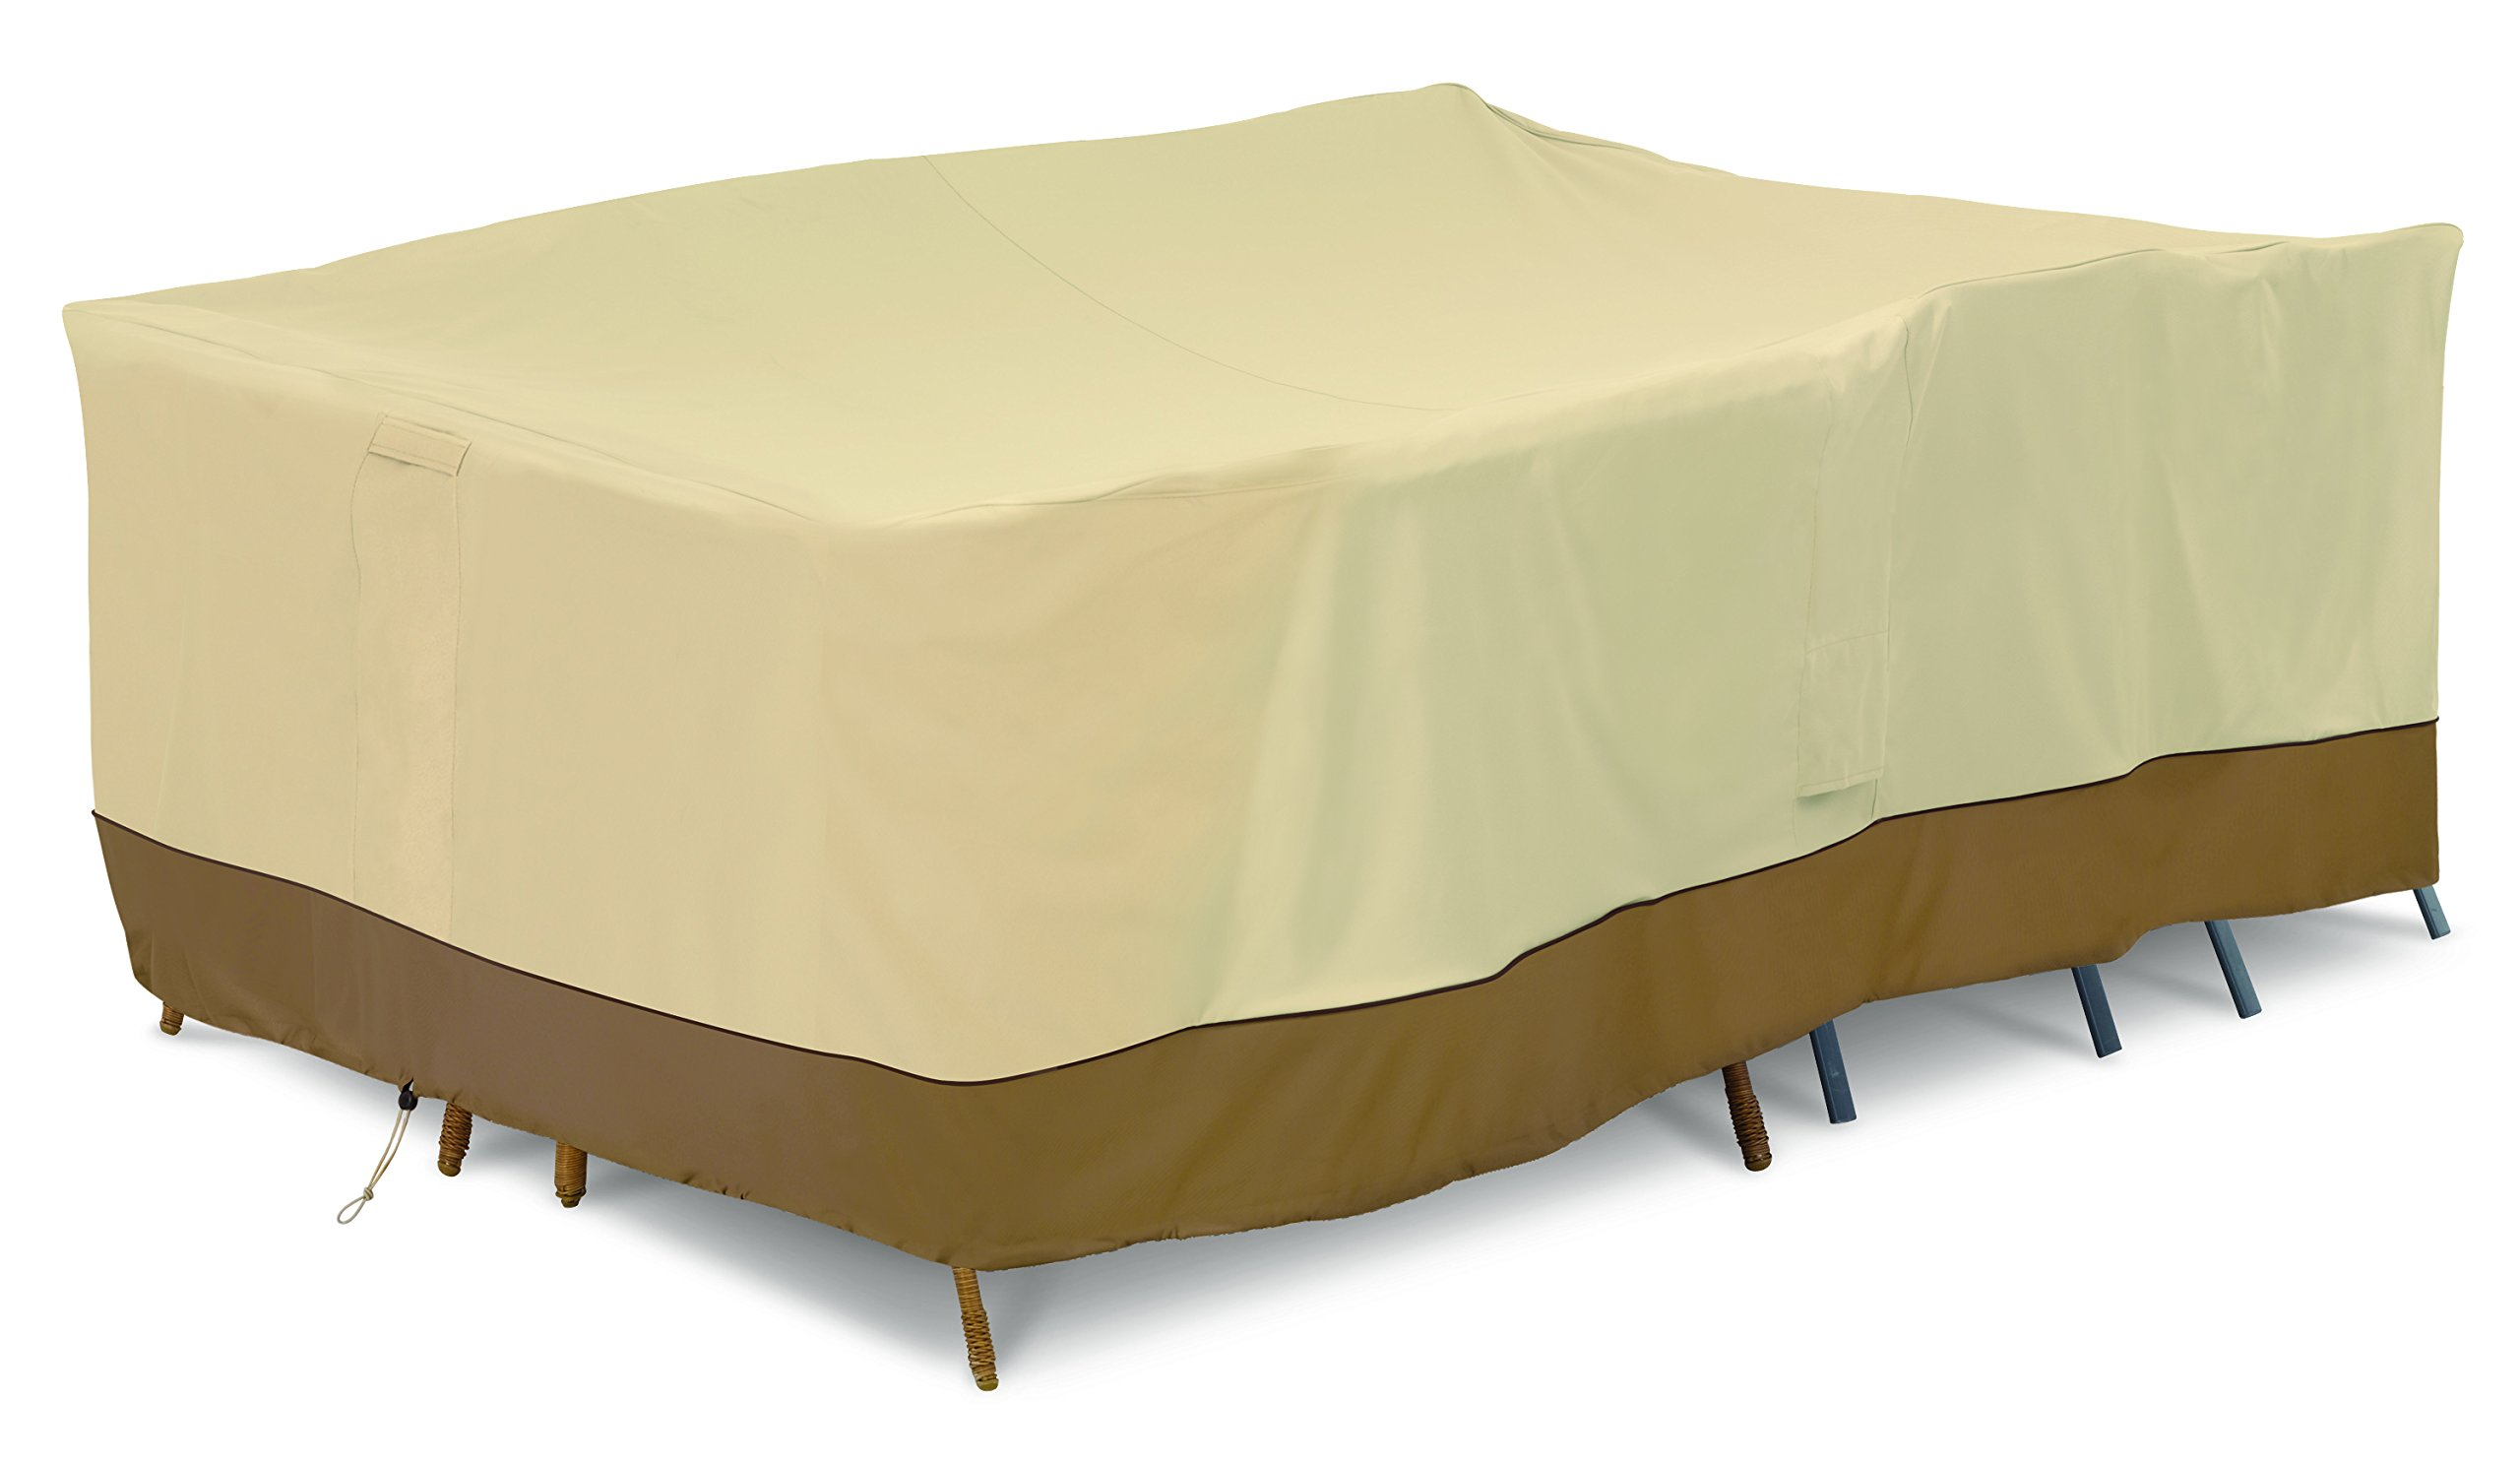 Classic Accessories 55-883-041501-00 Patio Furniture Cover, Large